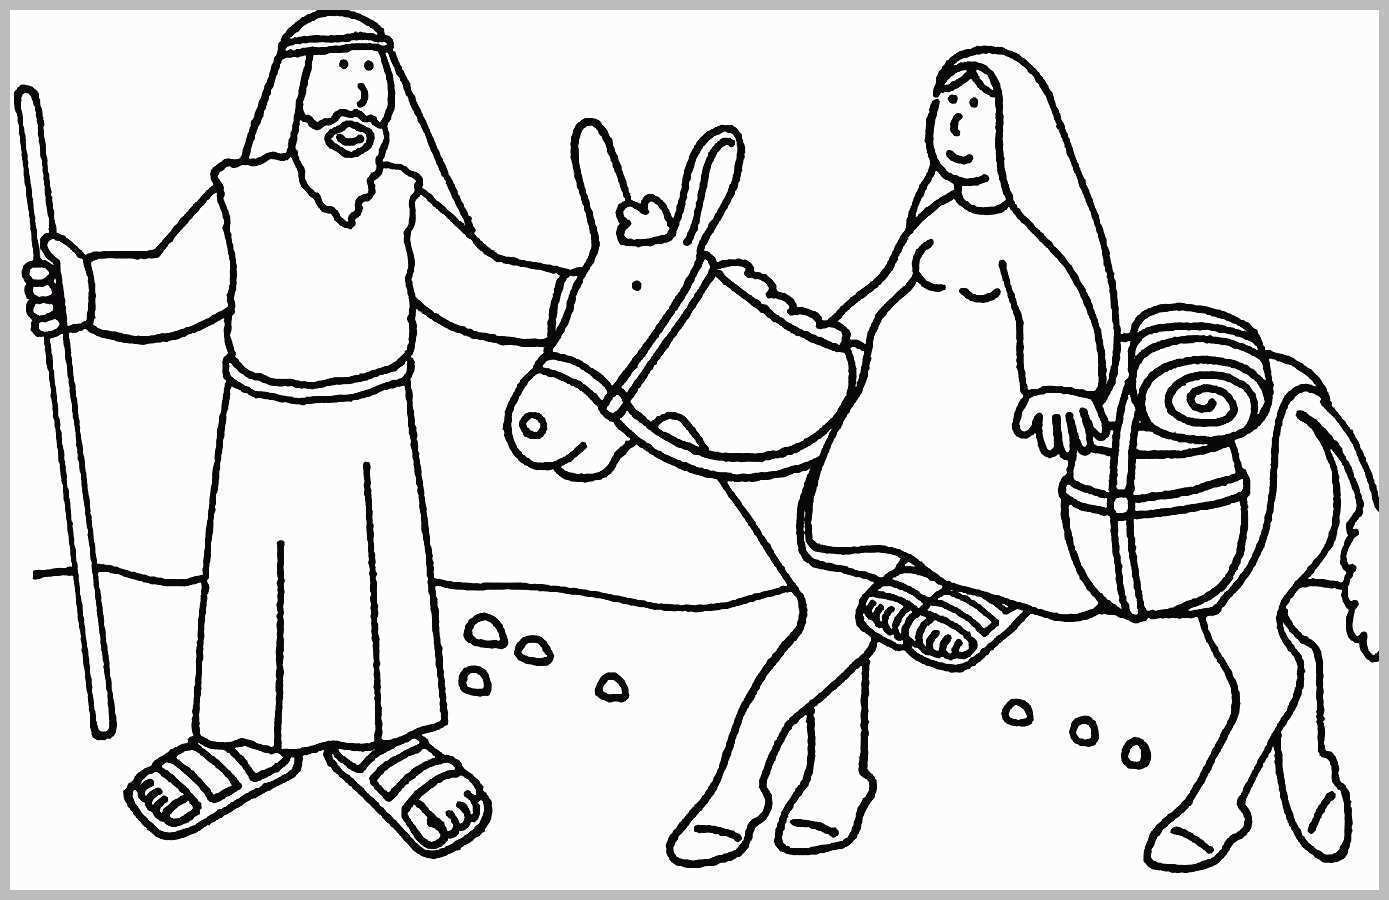 Coloring Pages : Bibleg For Kids Pages Preschoolers Pretty Free - Free Printable Nativity Story Coloring Pages